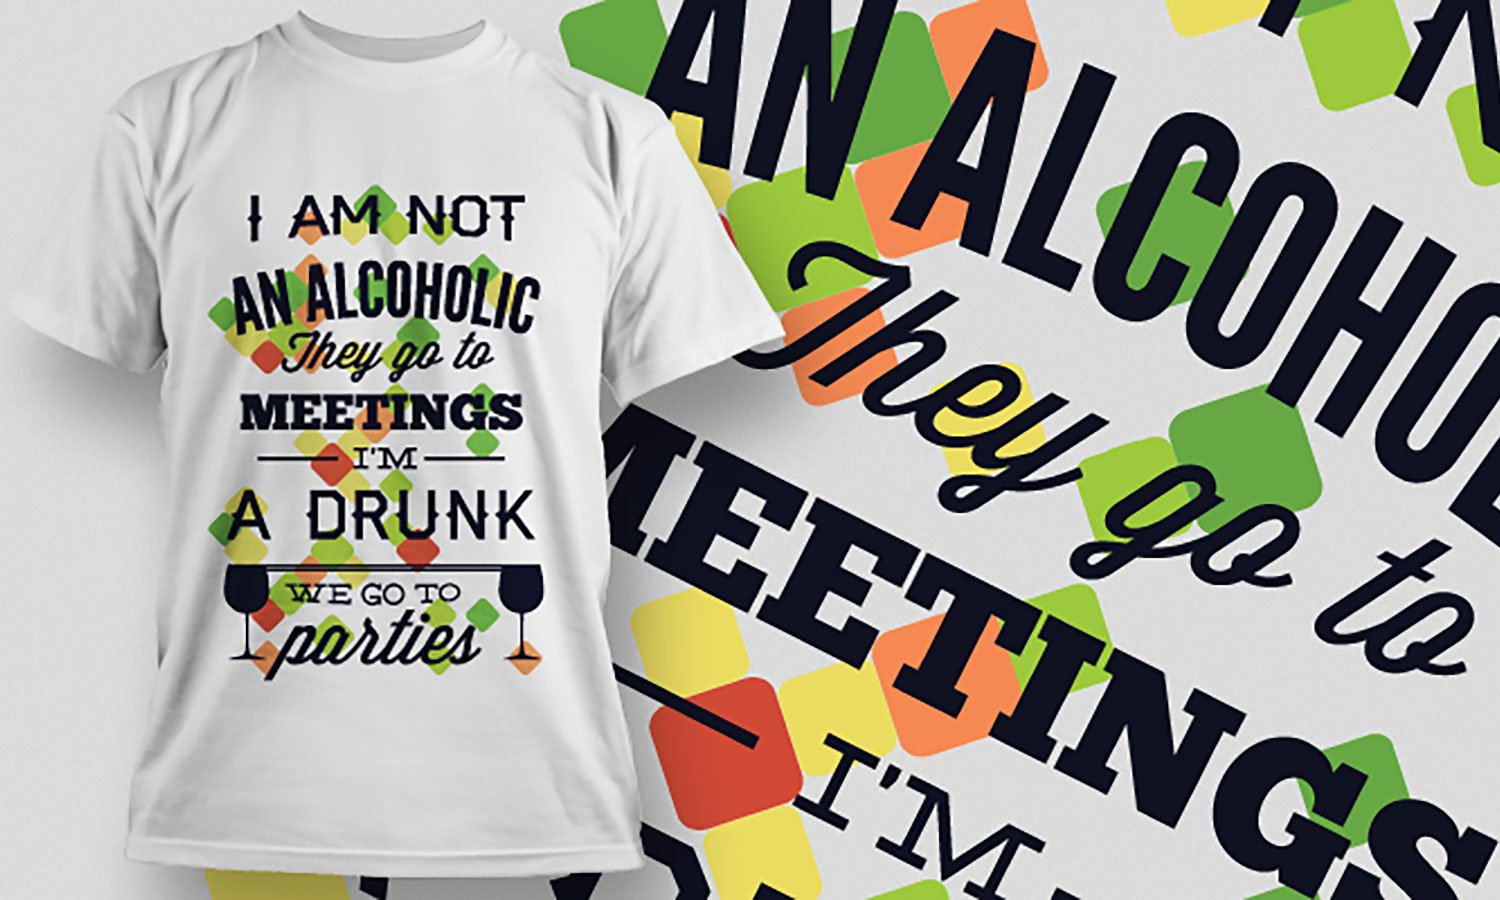 Alcoholic - Printed T-Shirt for Men, Women and Kids - TS348